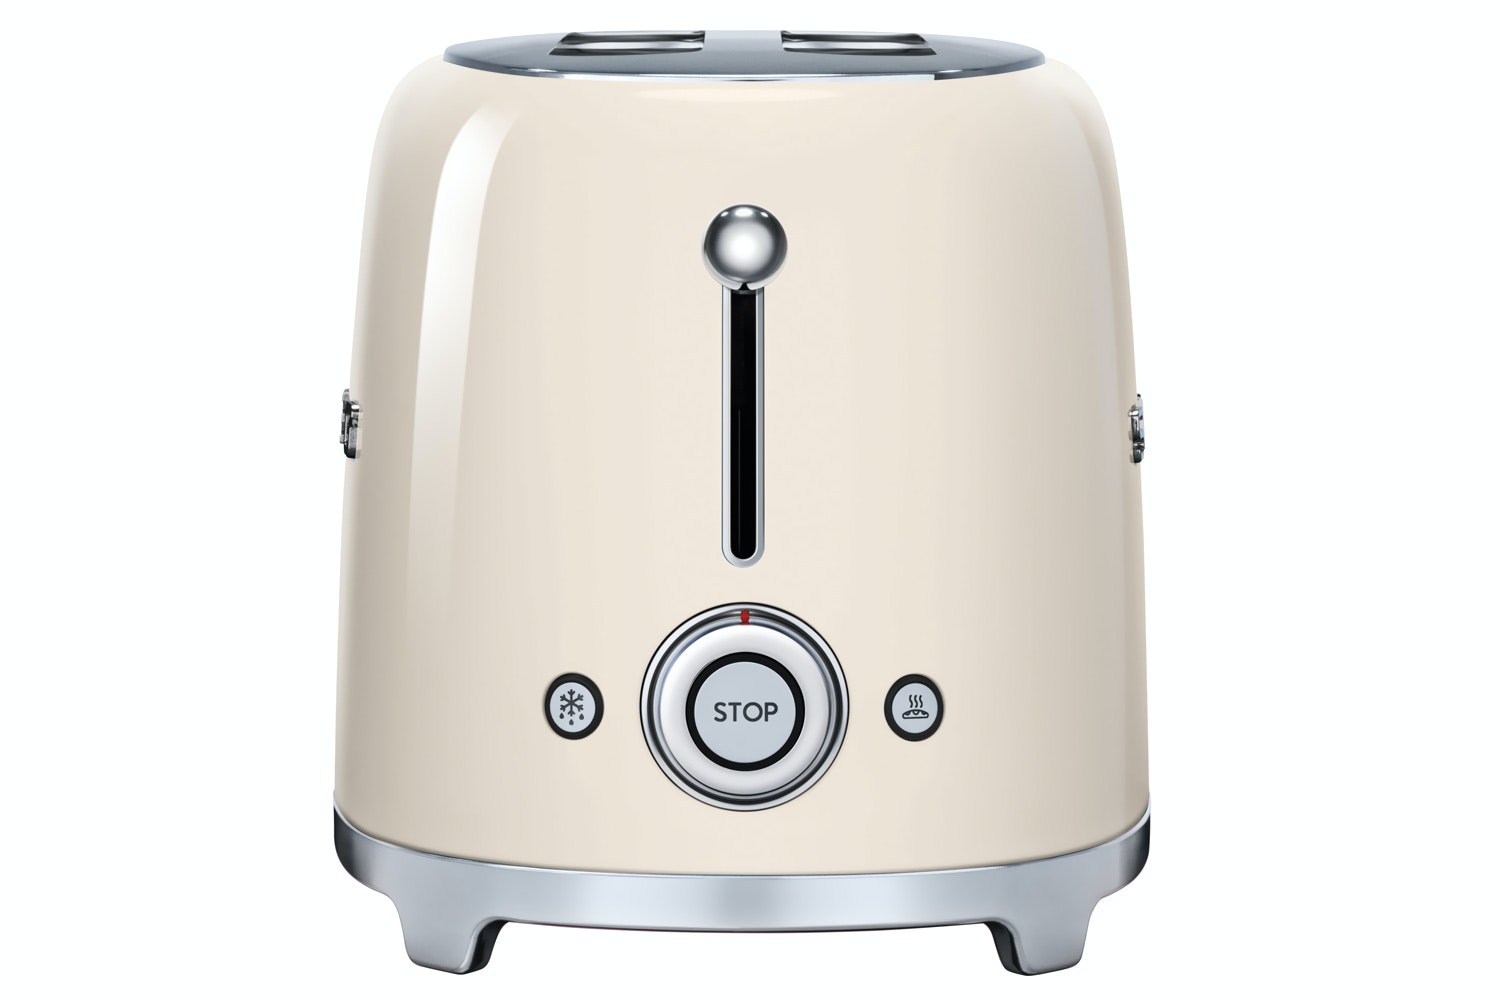 Smeg Retro 4 Slice Toaster | Cream